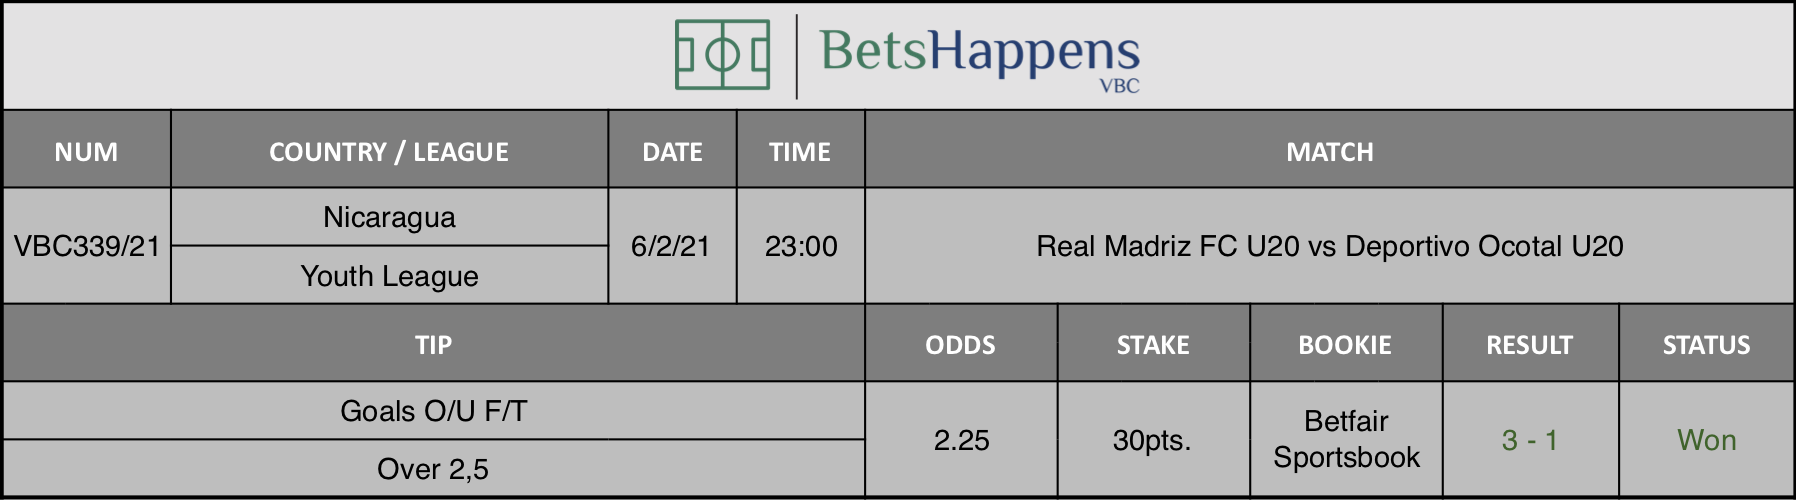 Results of our tip for the Real Madriz FC U20 vs Deportivo Ocotal U20 match where Goals O/U F/T Over 2,5 is recommended.